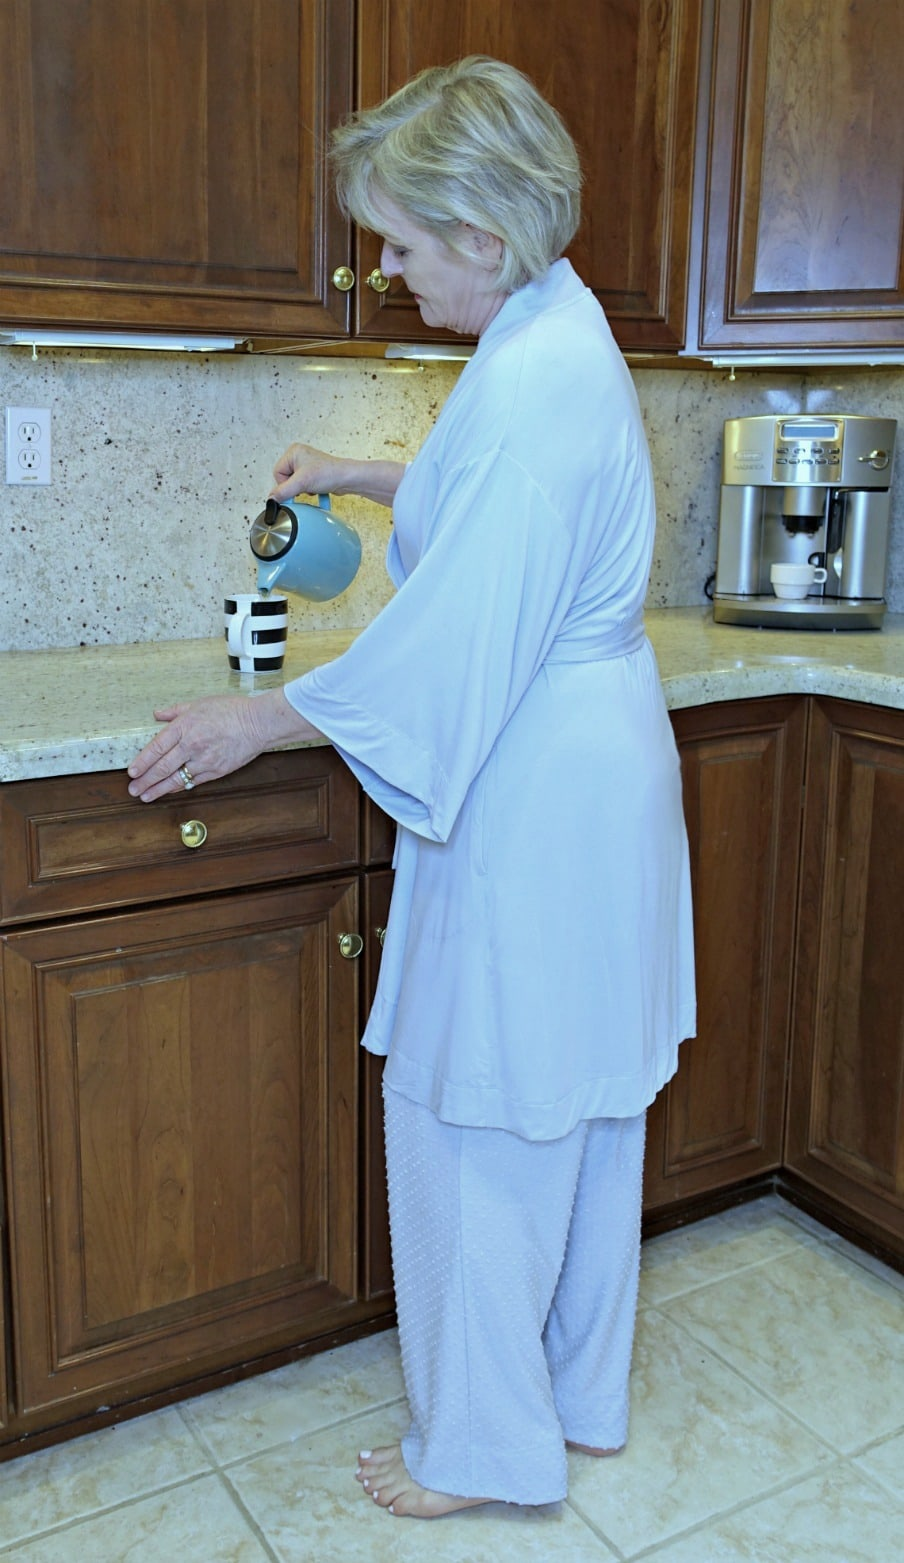 Jennifer of A Well Styled Life pouring tee in the morning wear rove and pajamas from Soma in cool blue color